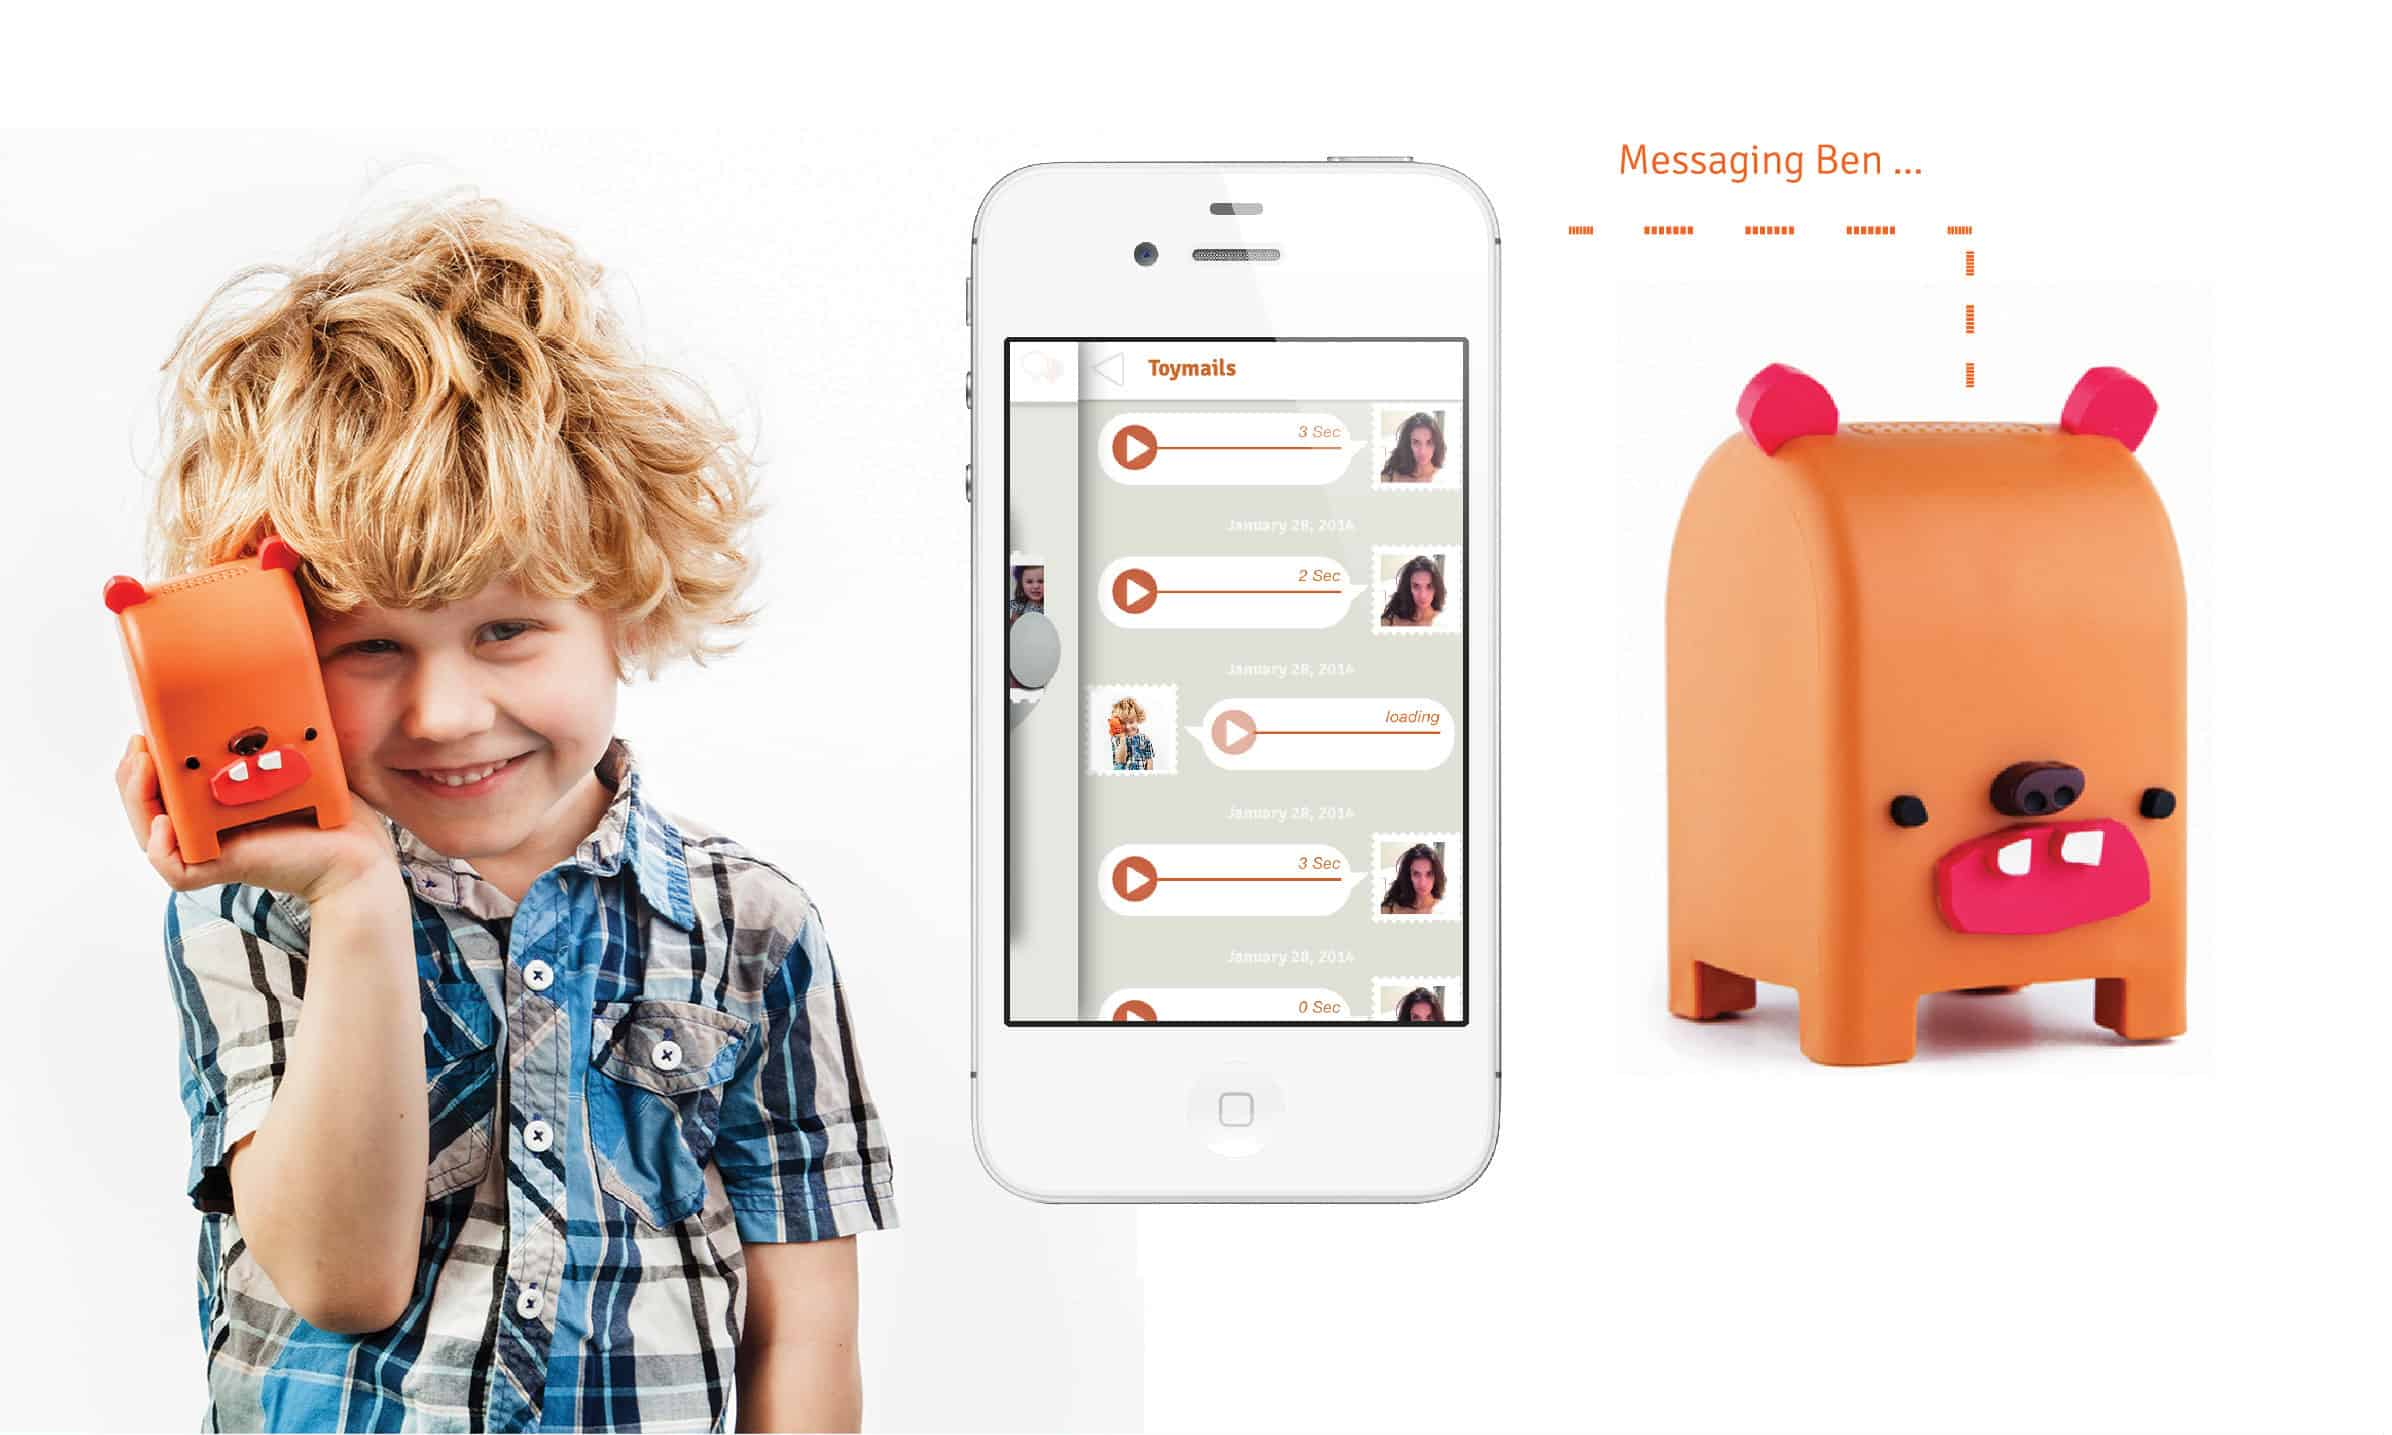 Toymail WIFI Messaging Toy How This Cool Device Works